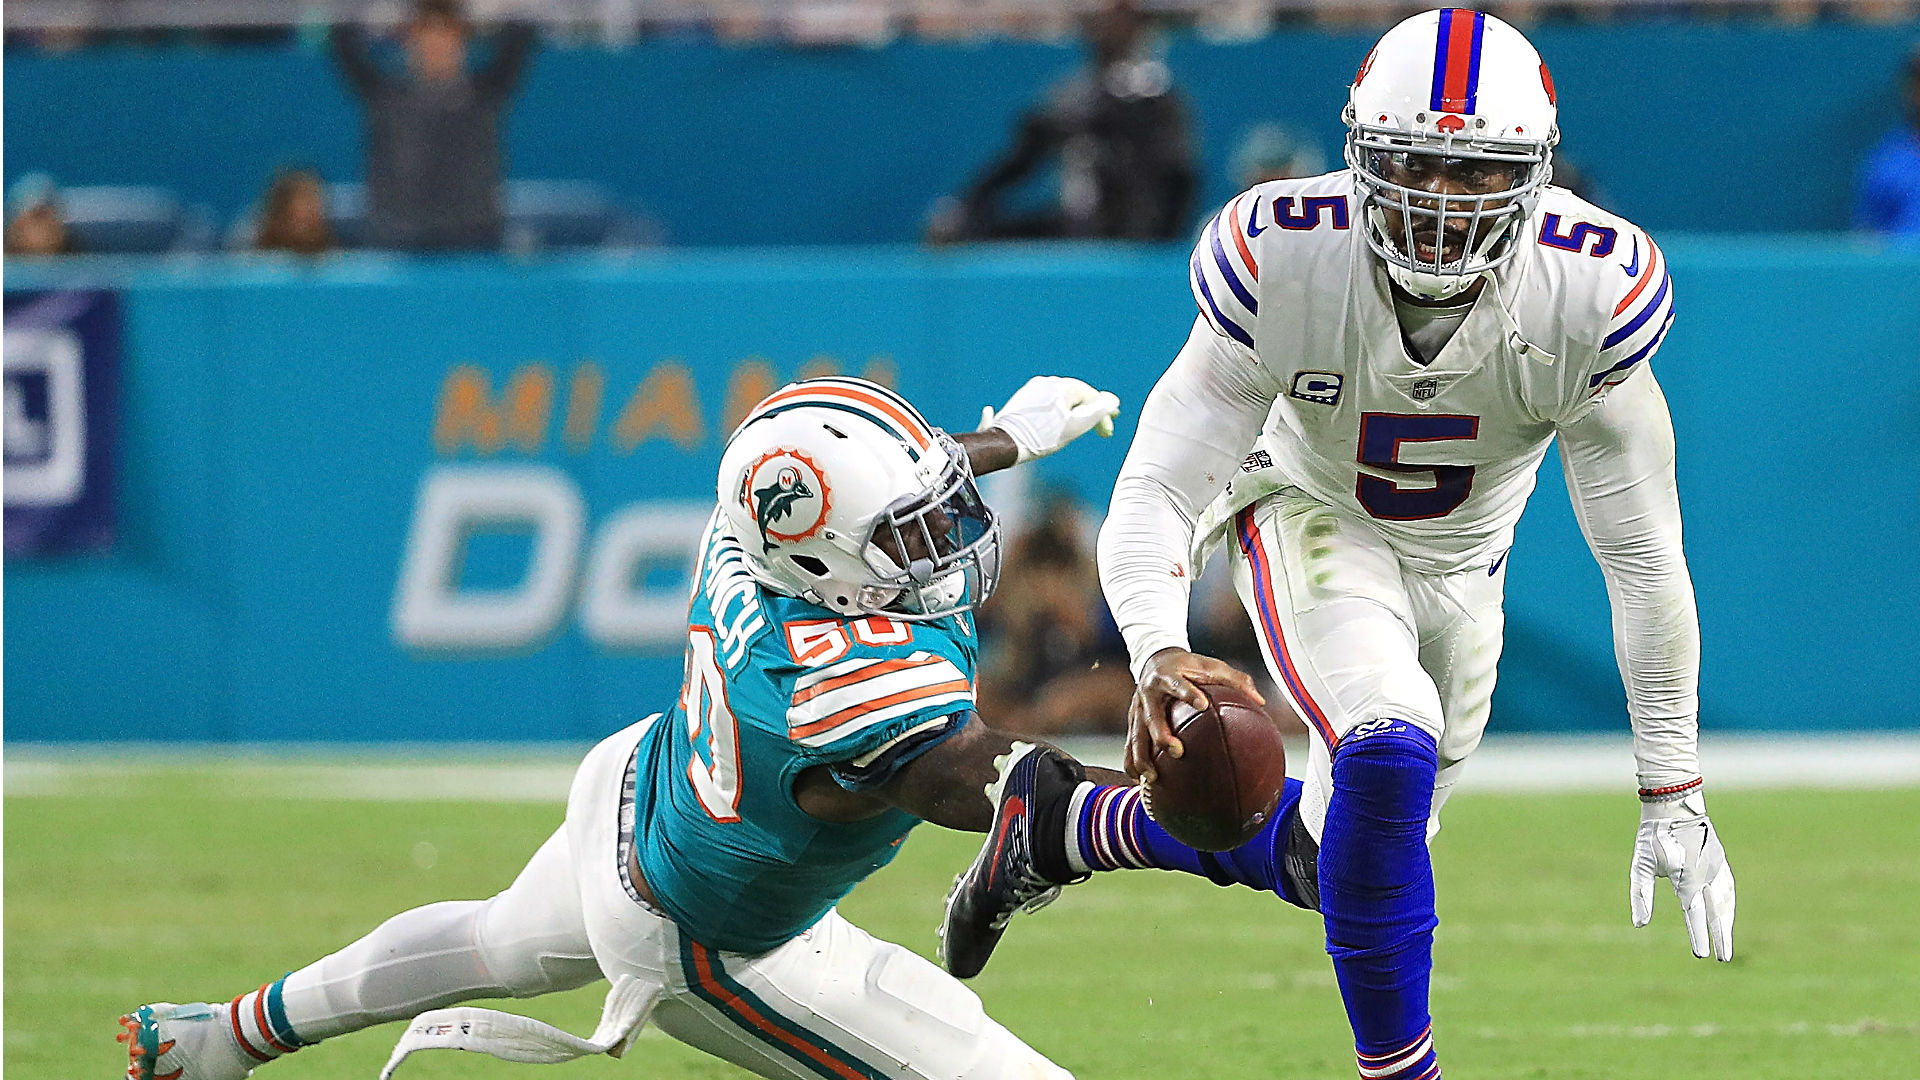 Bills end 17-year playoff drought with win and help